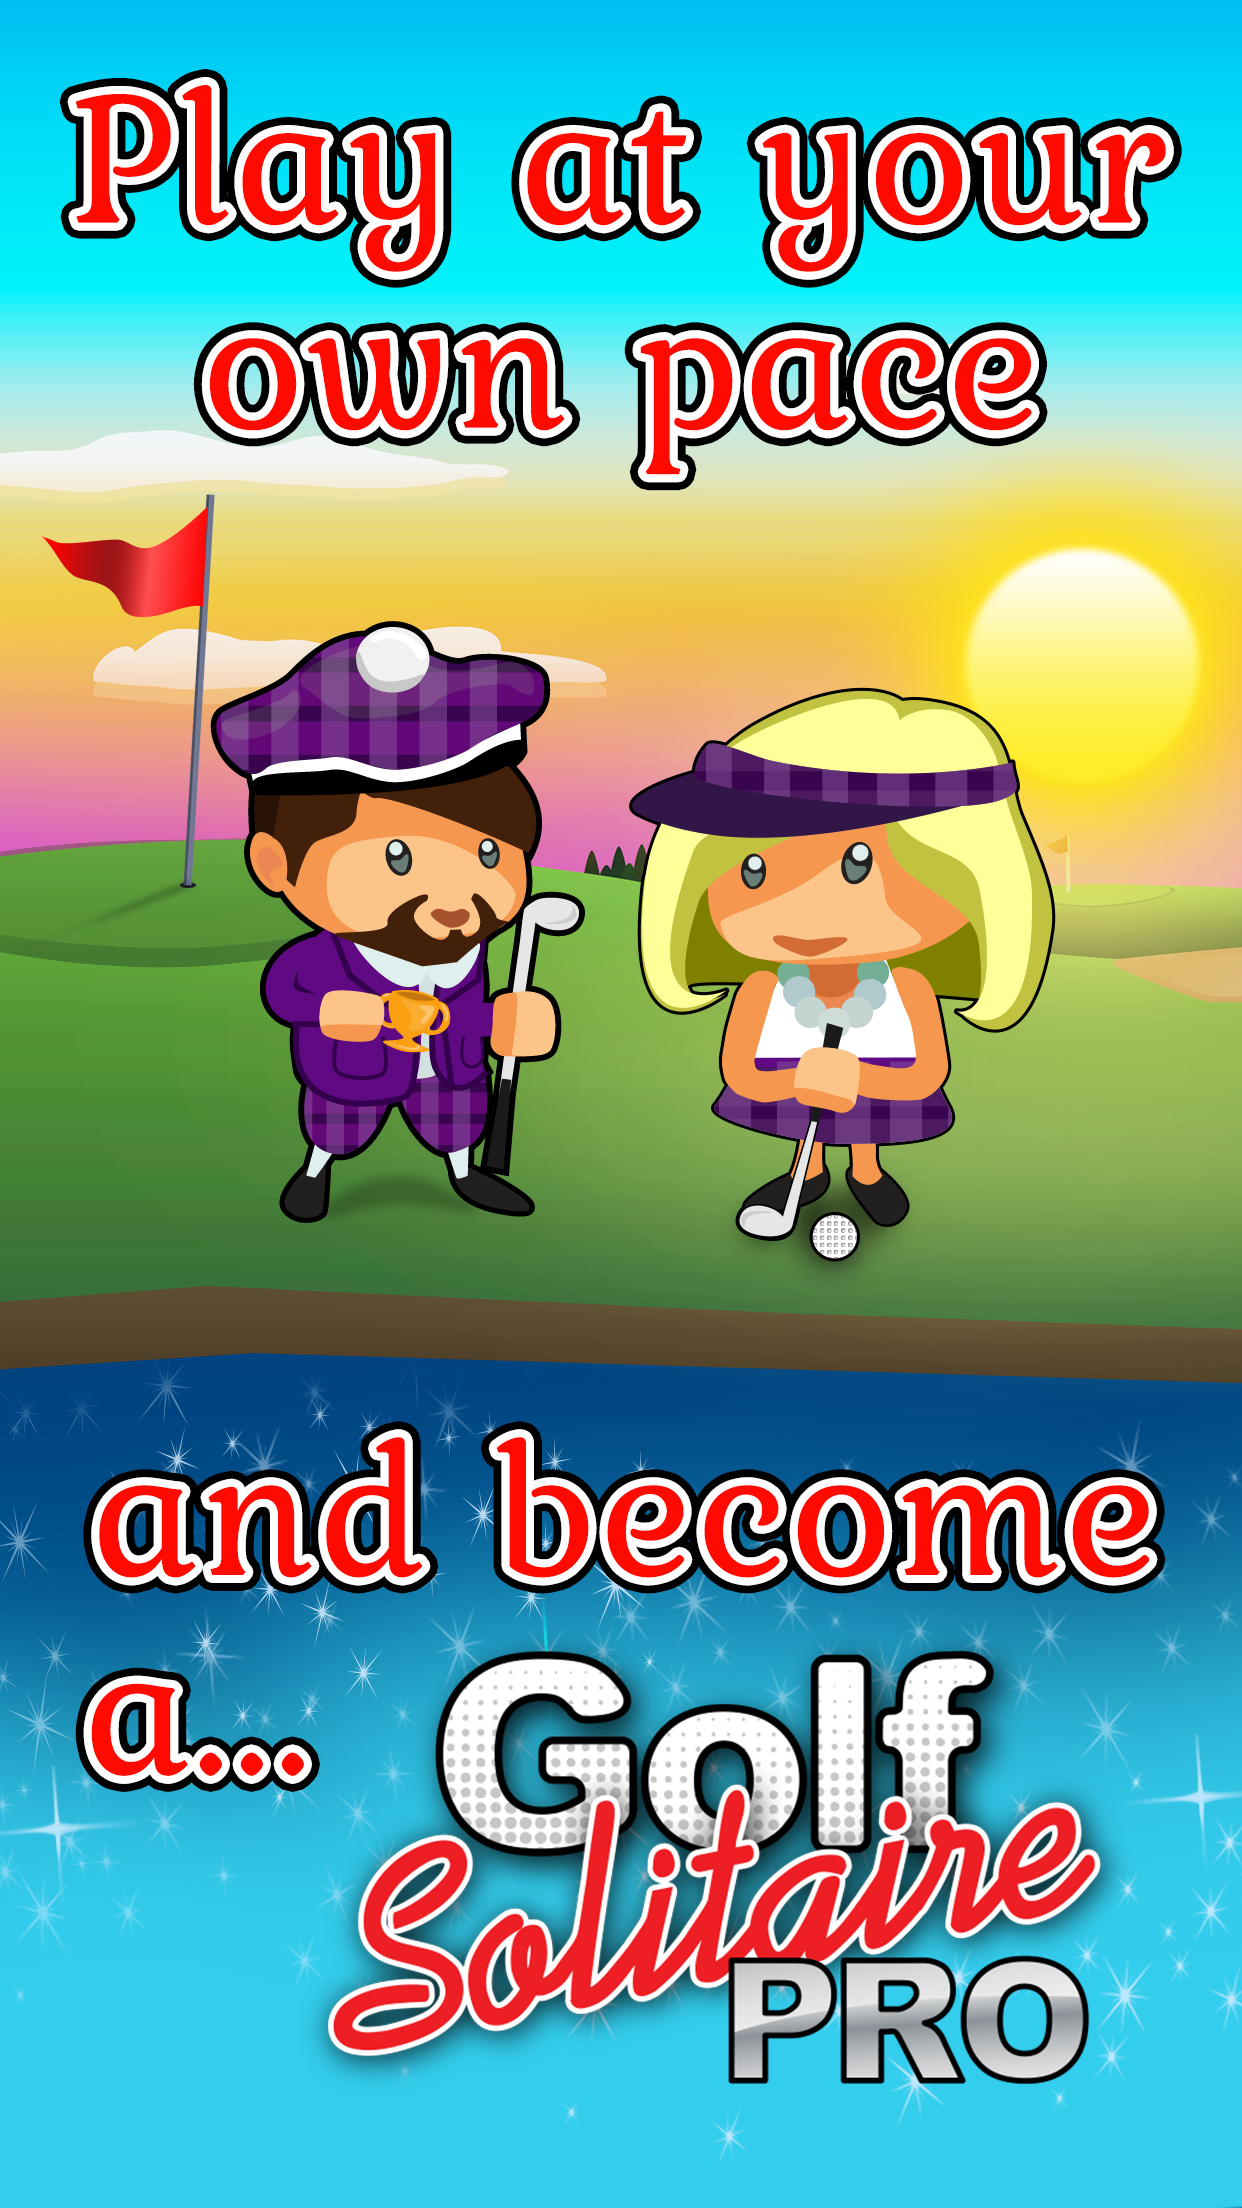 Golf Solitaire Pro is the cutest game around with lovely